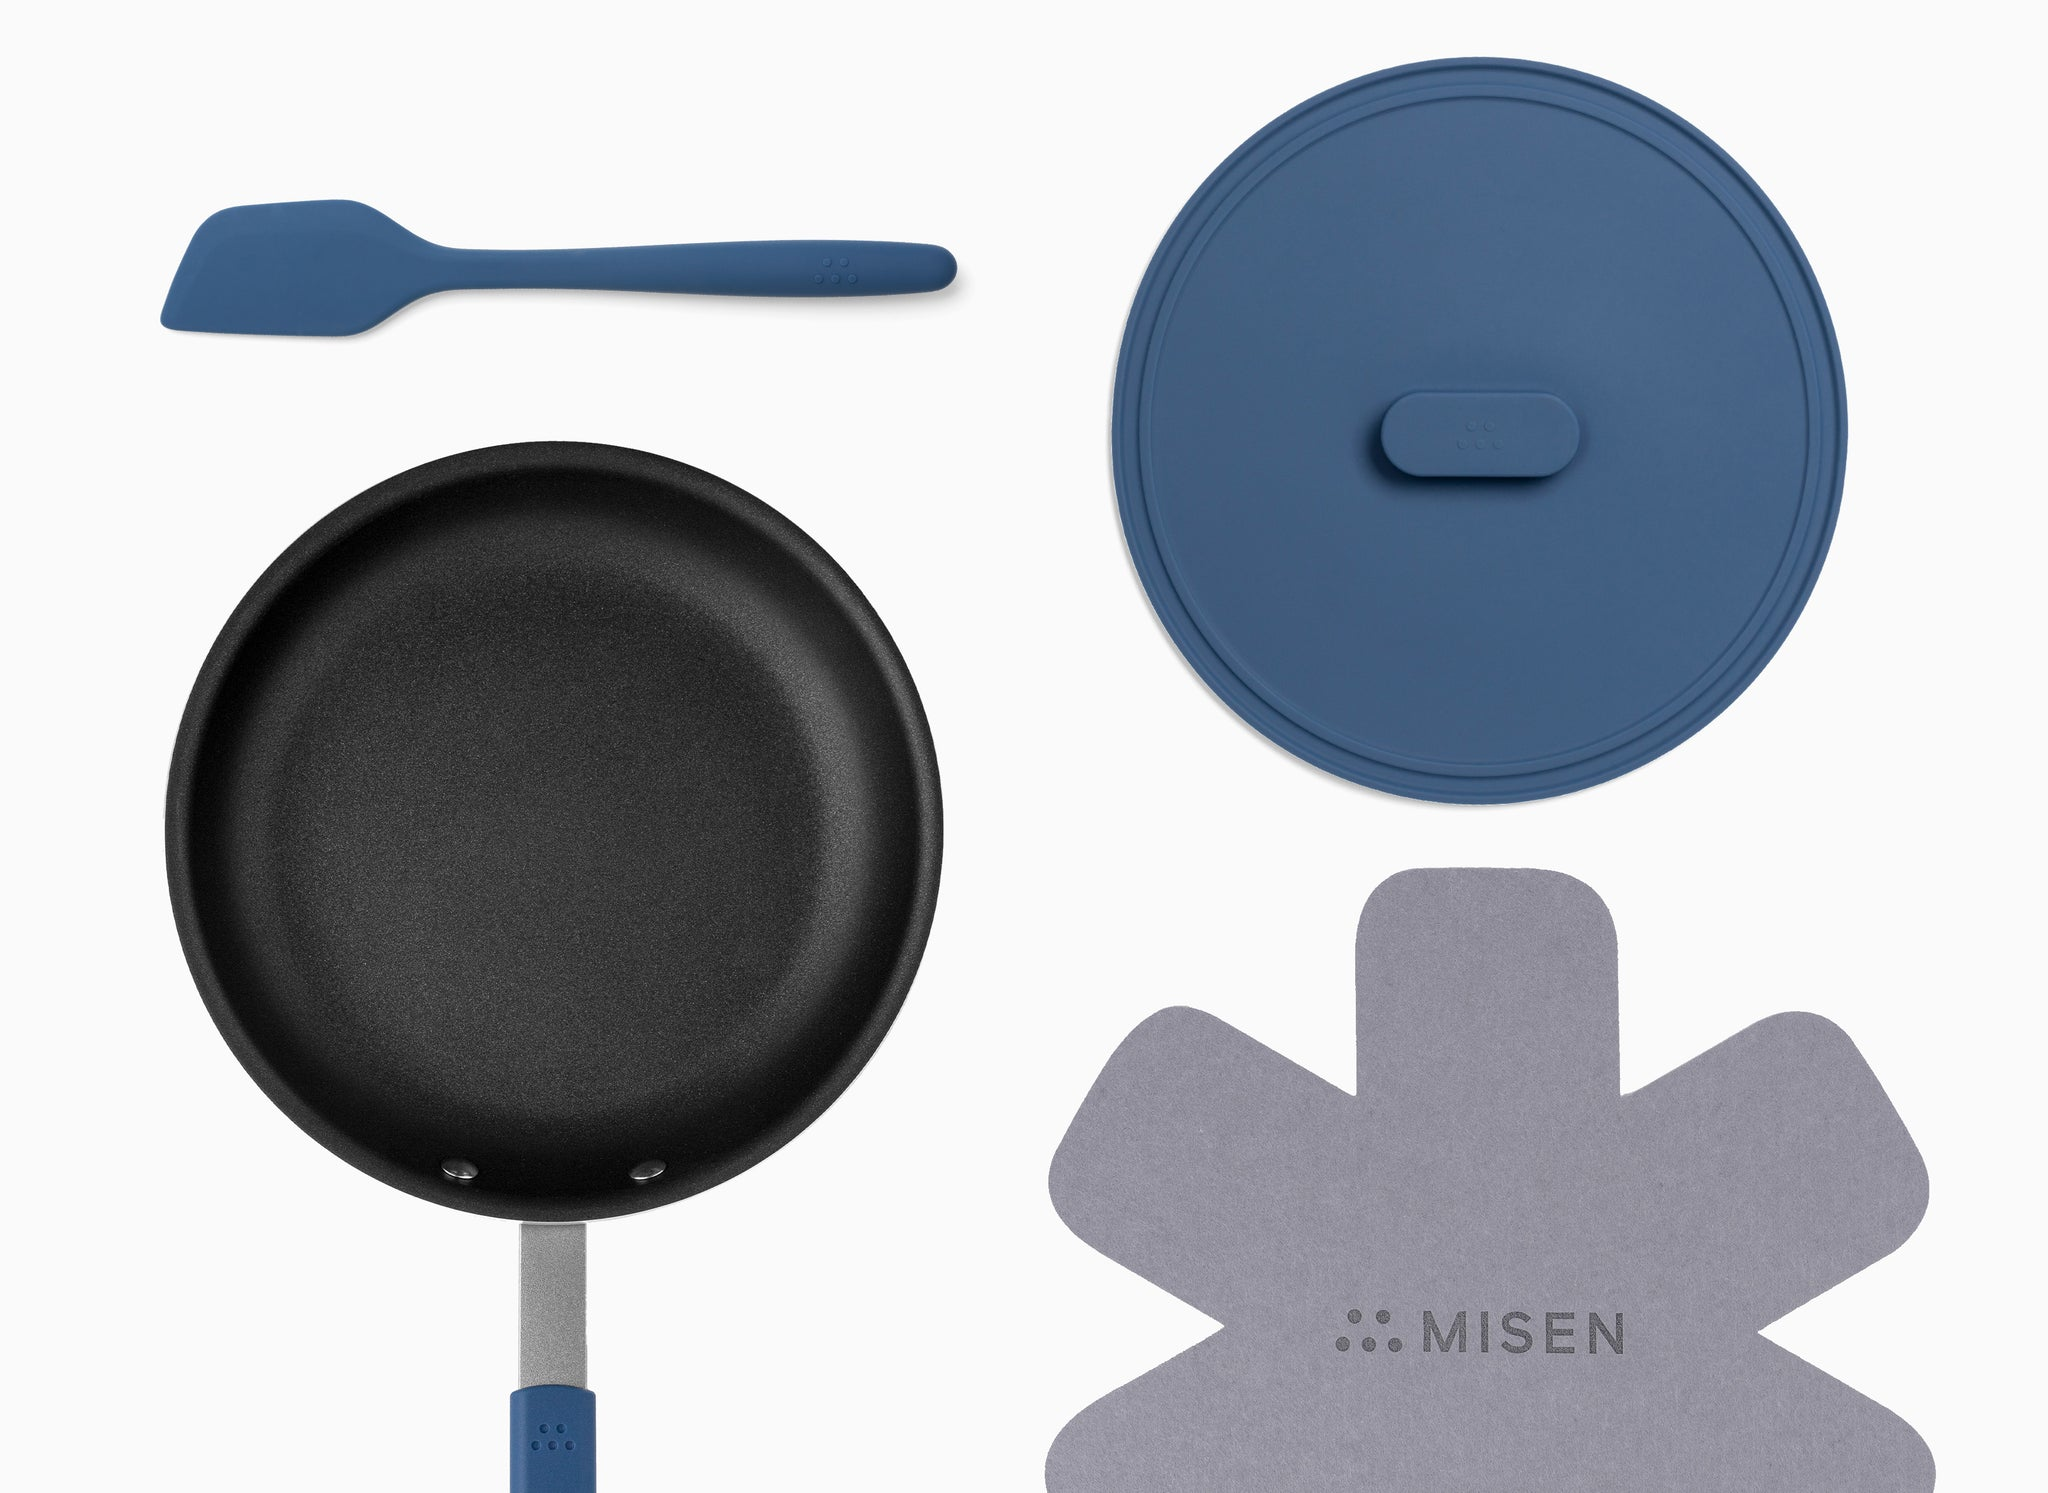 Misen nonstick bundle with 10inch nonstick pan, lid, and spatula